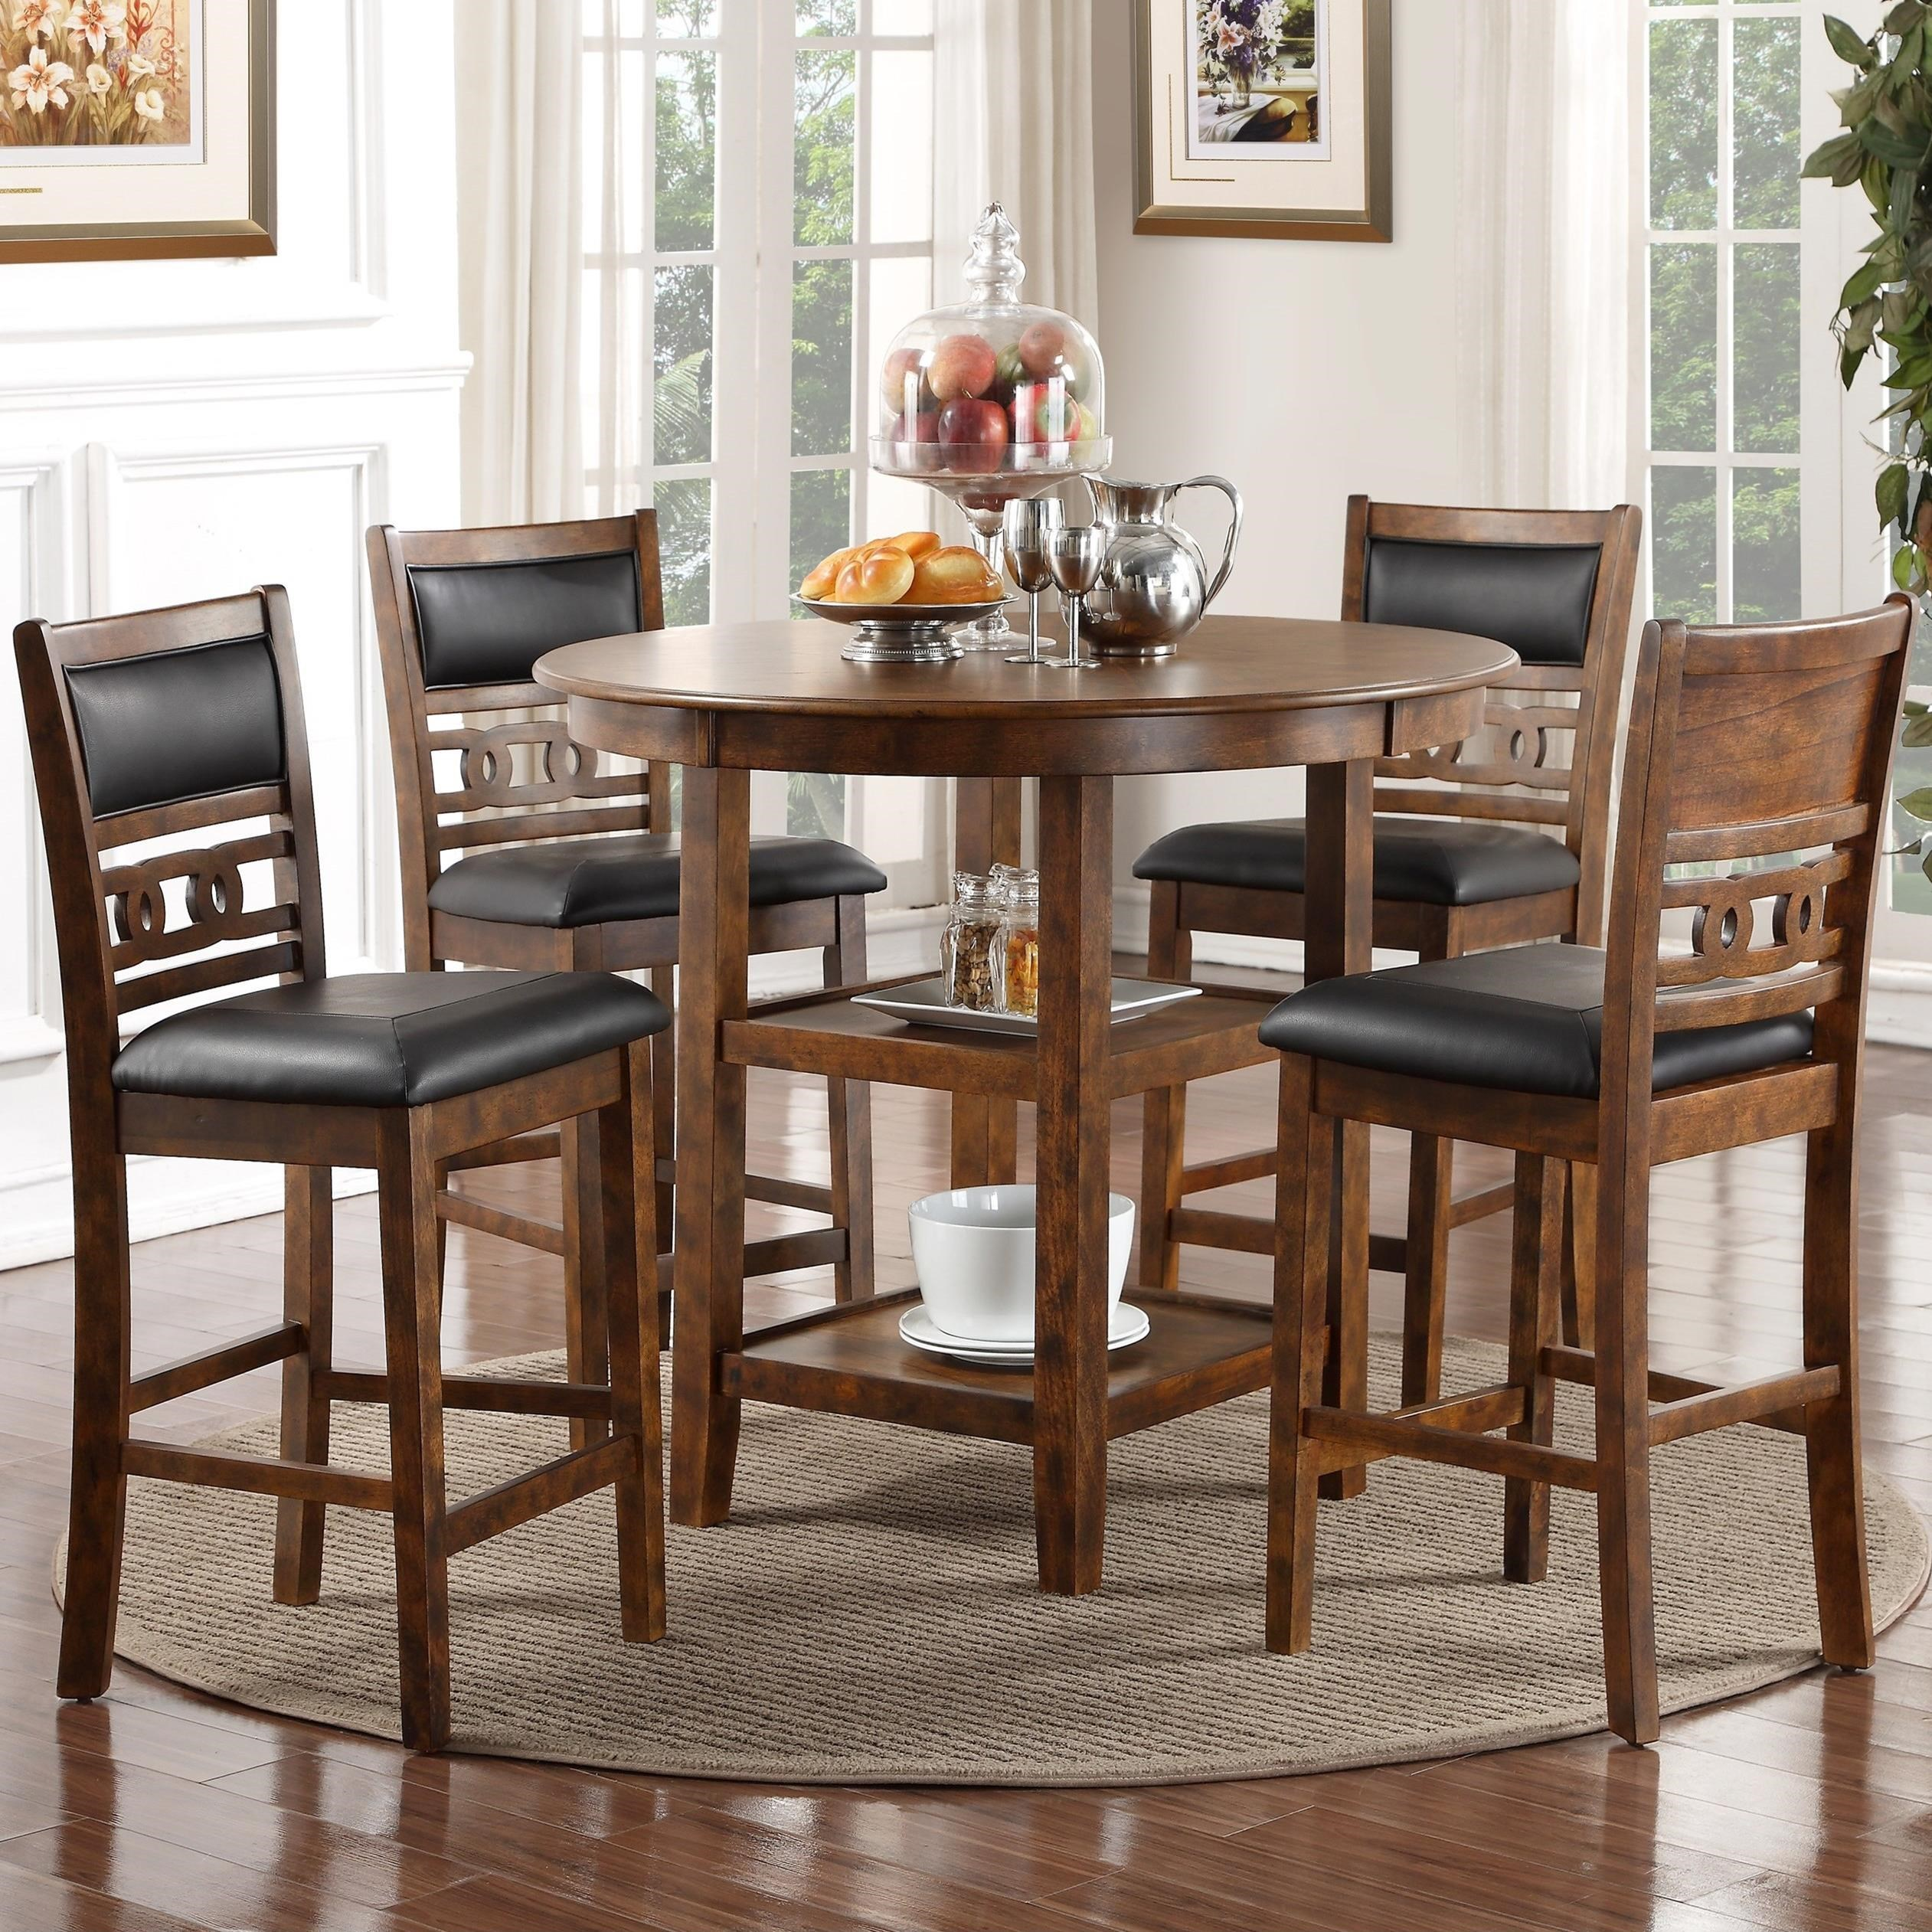 New Classic Gia Counter Height Dining Table And Chair Set With 4 Chairs And  Circle Motif   Great American Home Store   Dining 5 Piece Sets